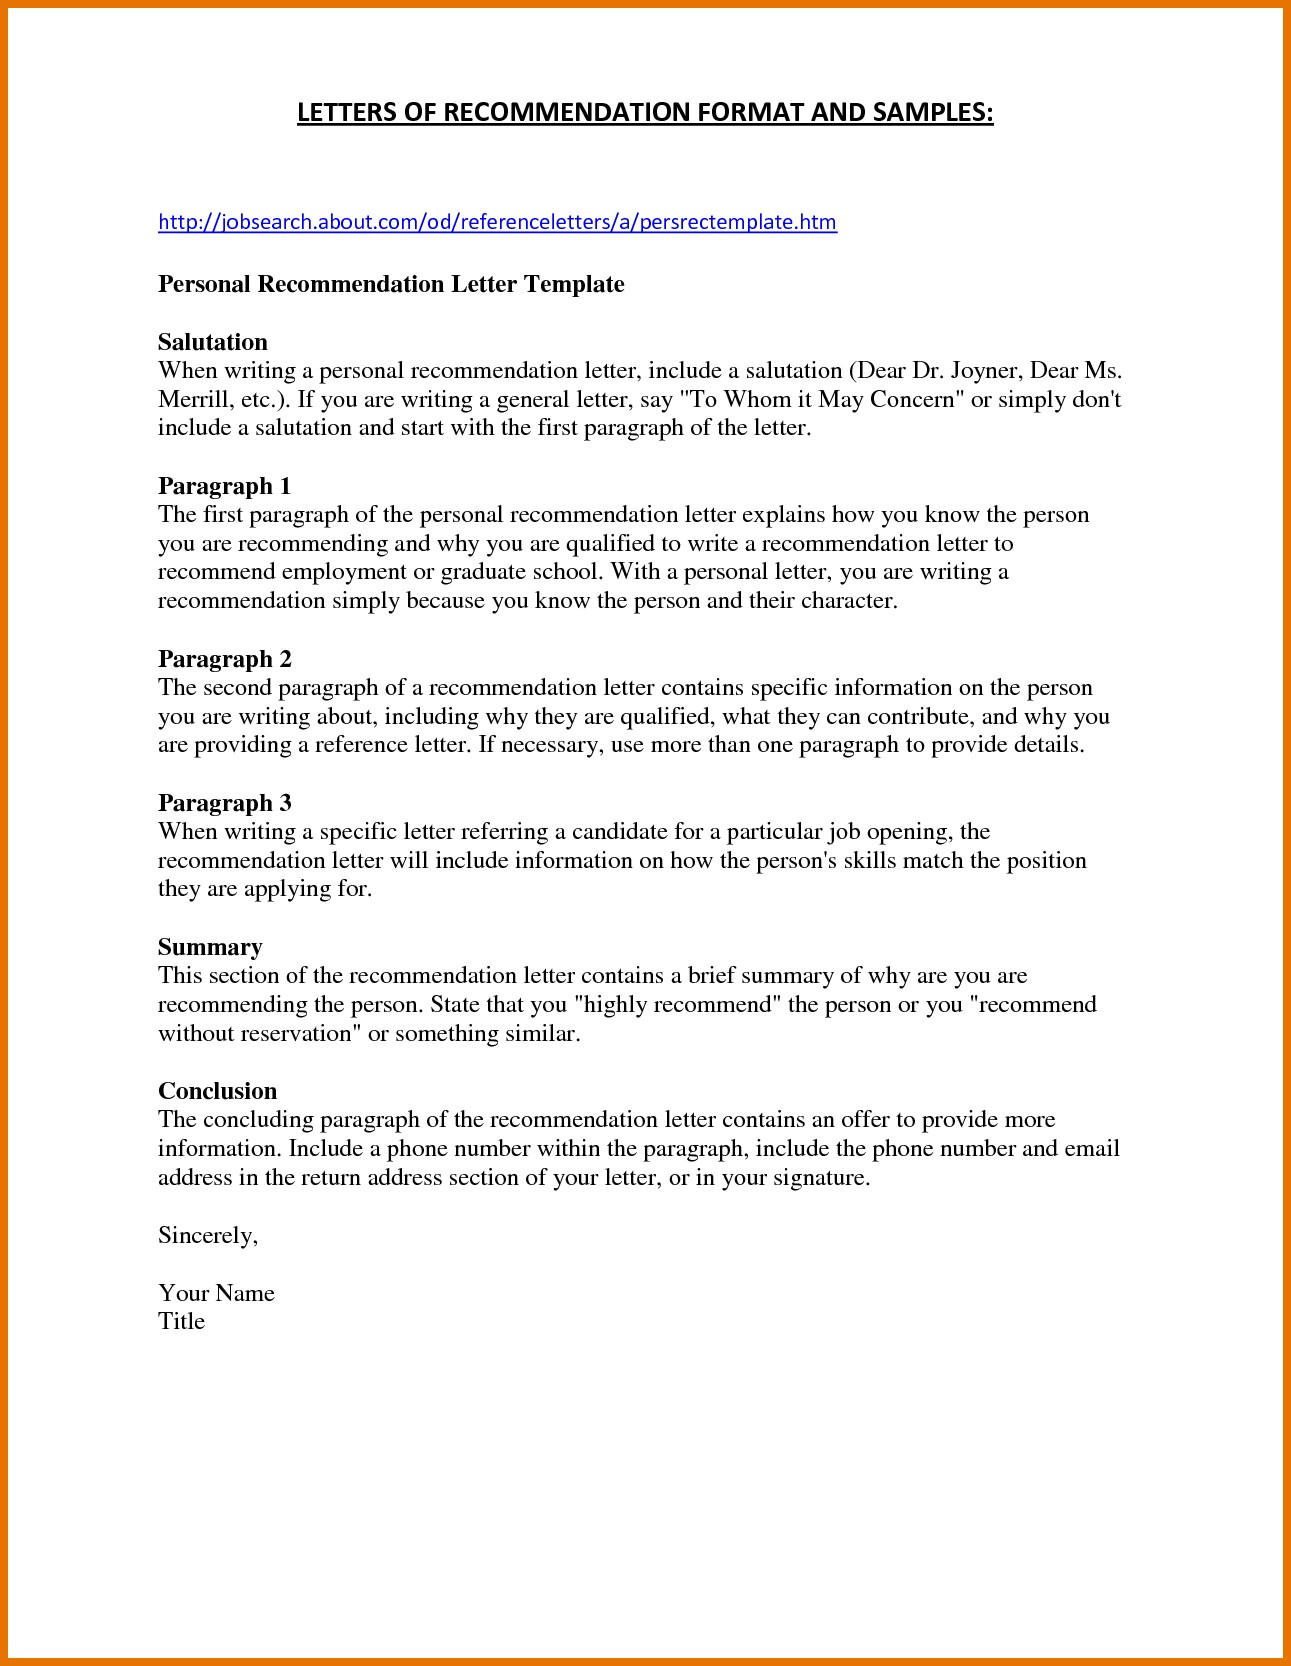 Reference Letter Template for Student - Australian Business Letter Template Fresh Reference Letter Template